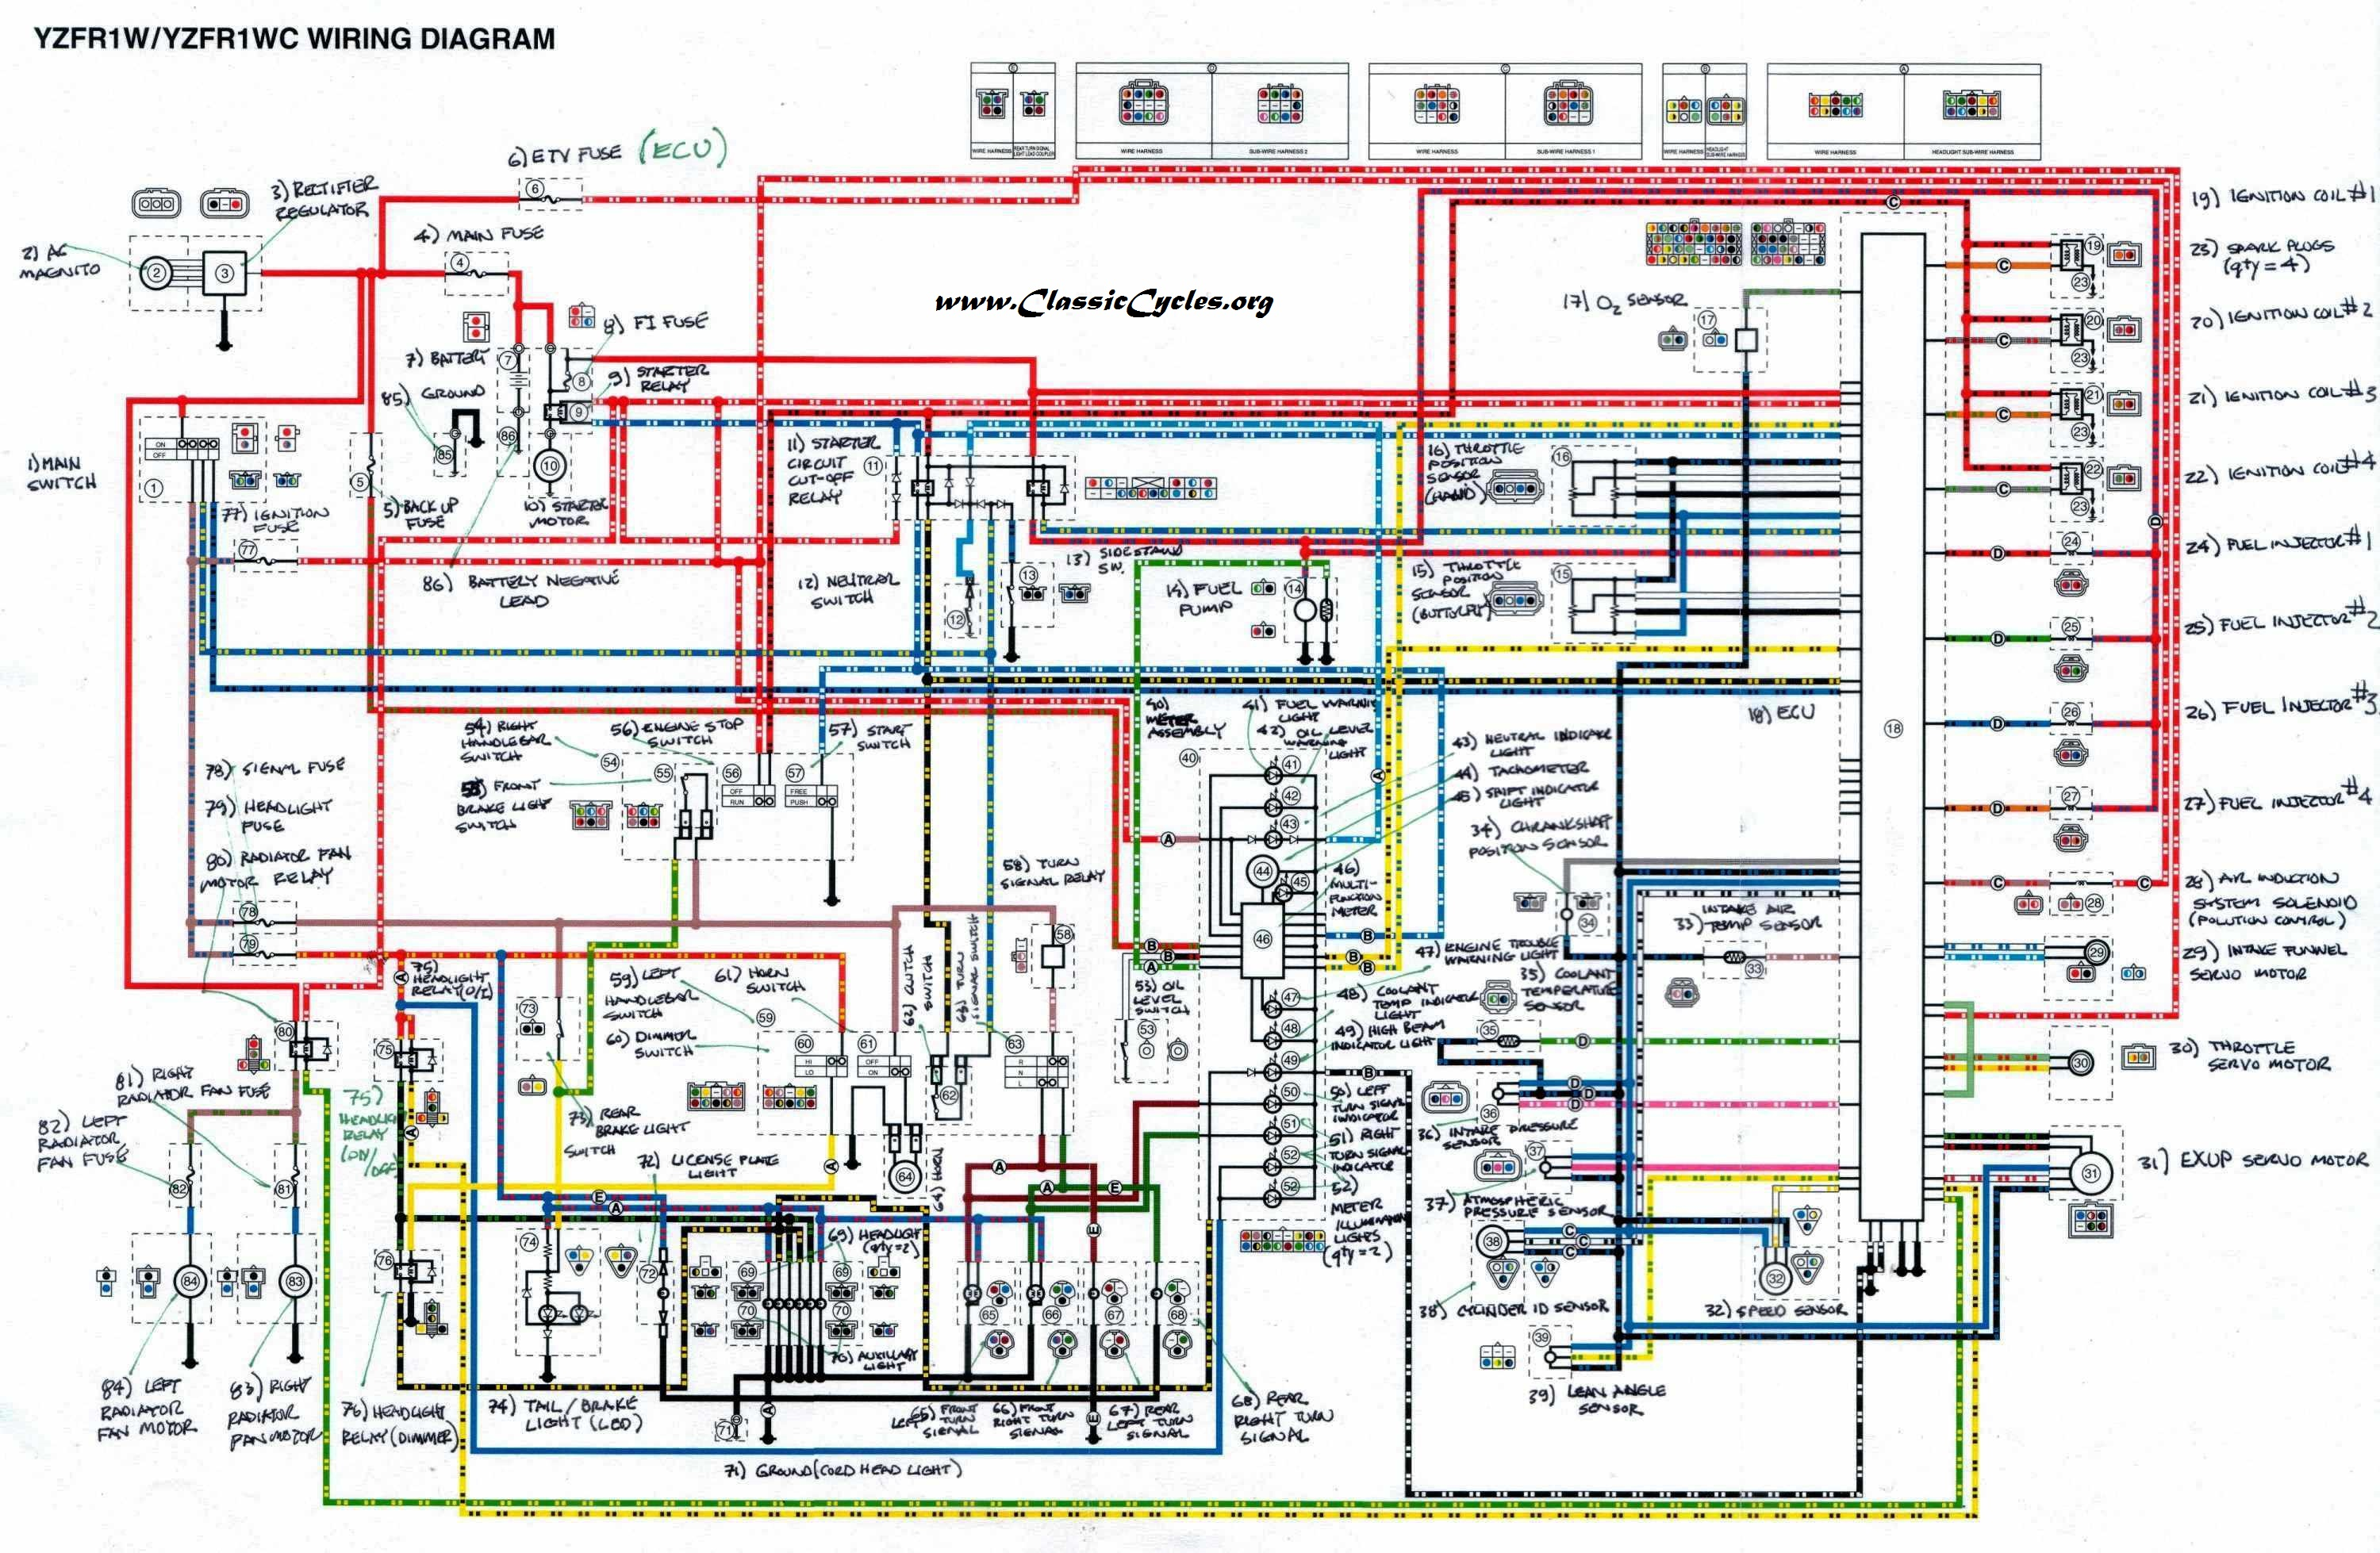 wiring diagram yamaha r6 2003 wiring diagram name Cbr 954Rr Wiring Diagram 2004 yamaha r6 wiring diagram manual e books 2003 suzuki intruder 1500 wiring diagram 2004 yamaha